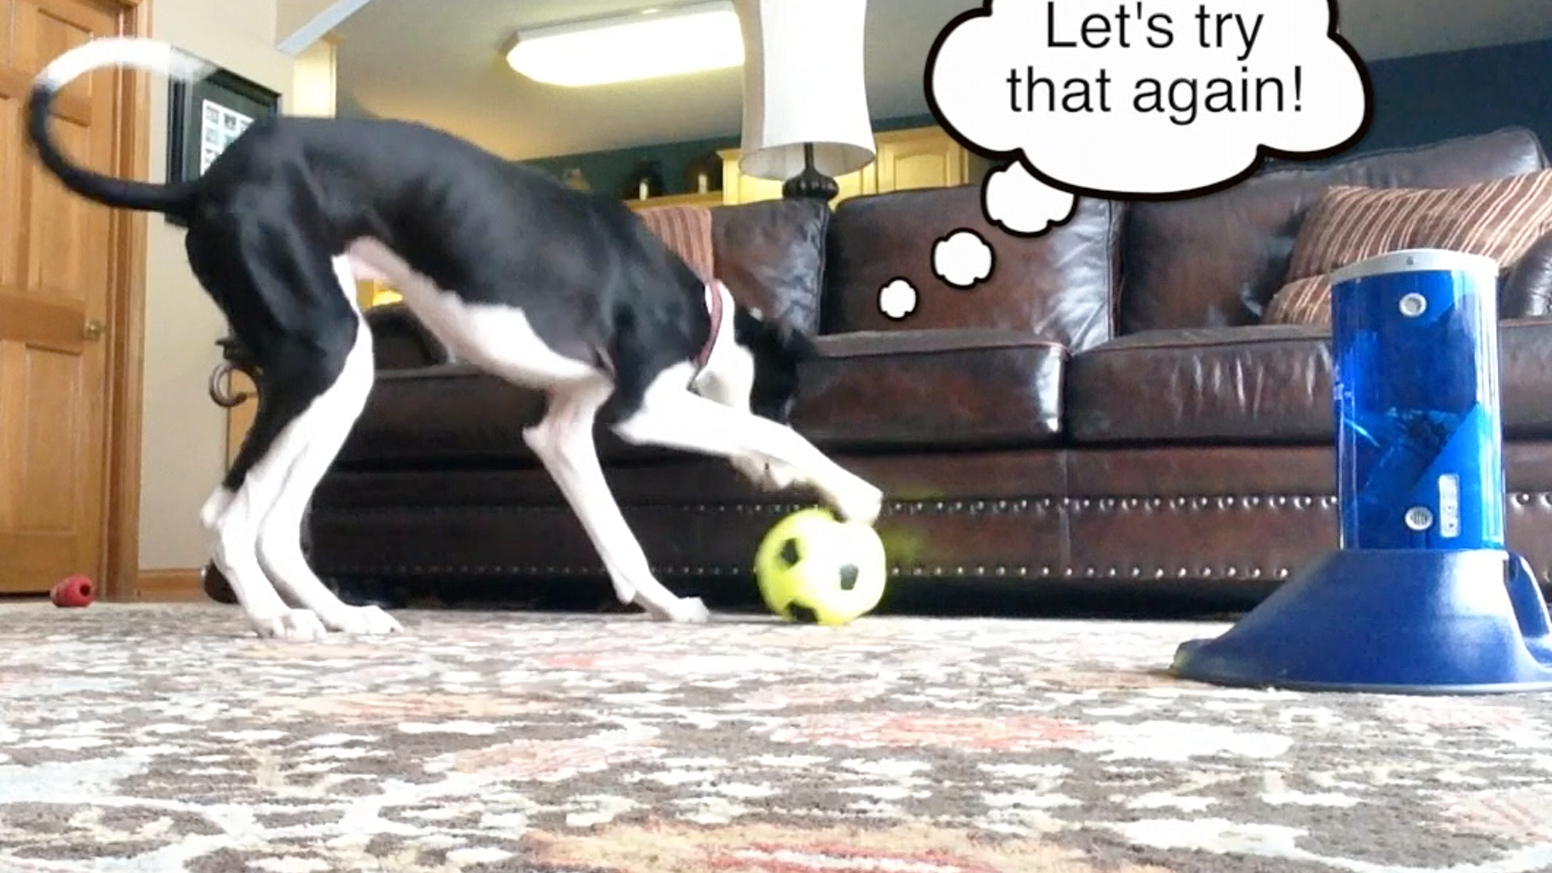 Want quiet, calm, happy dogs? It's easy with the world's first universal smart training & game system for pets.